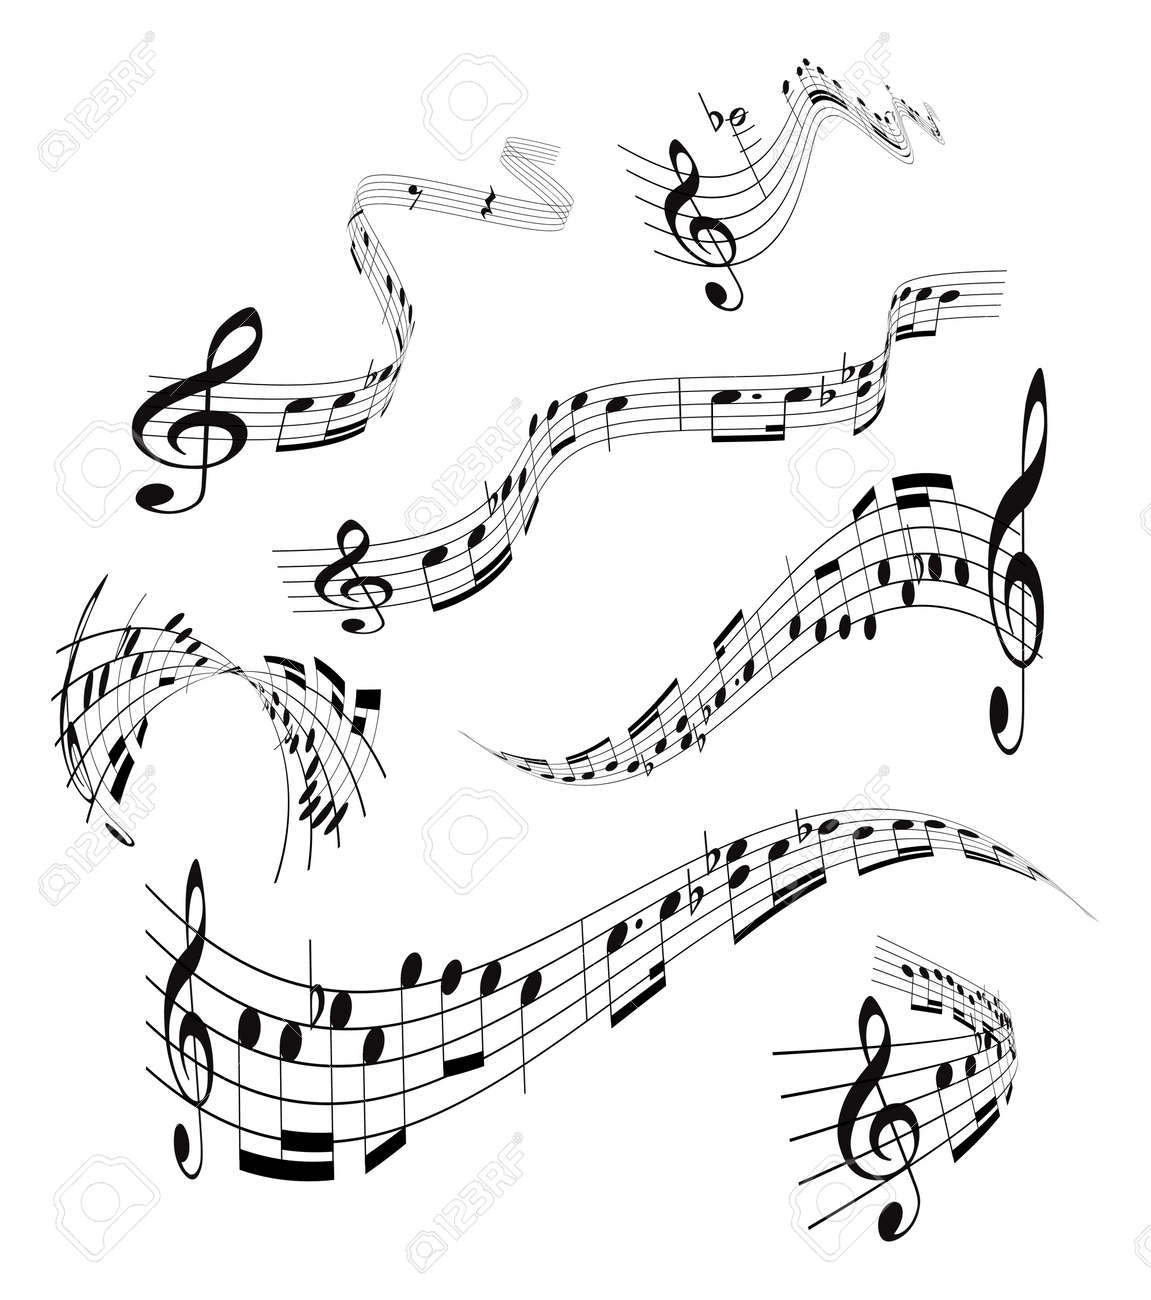 Musical notes staff background on white vector by tassel78 image - Sheet Music Set Of Musical Notes Staff Illustration